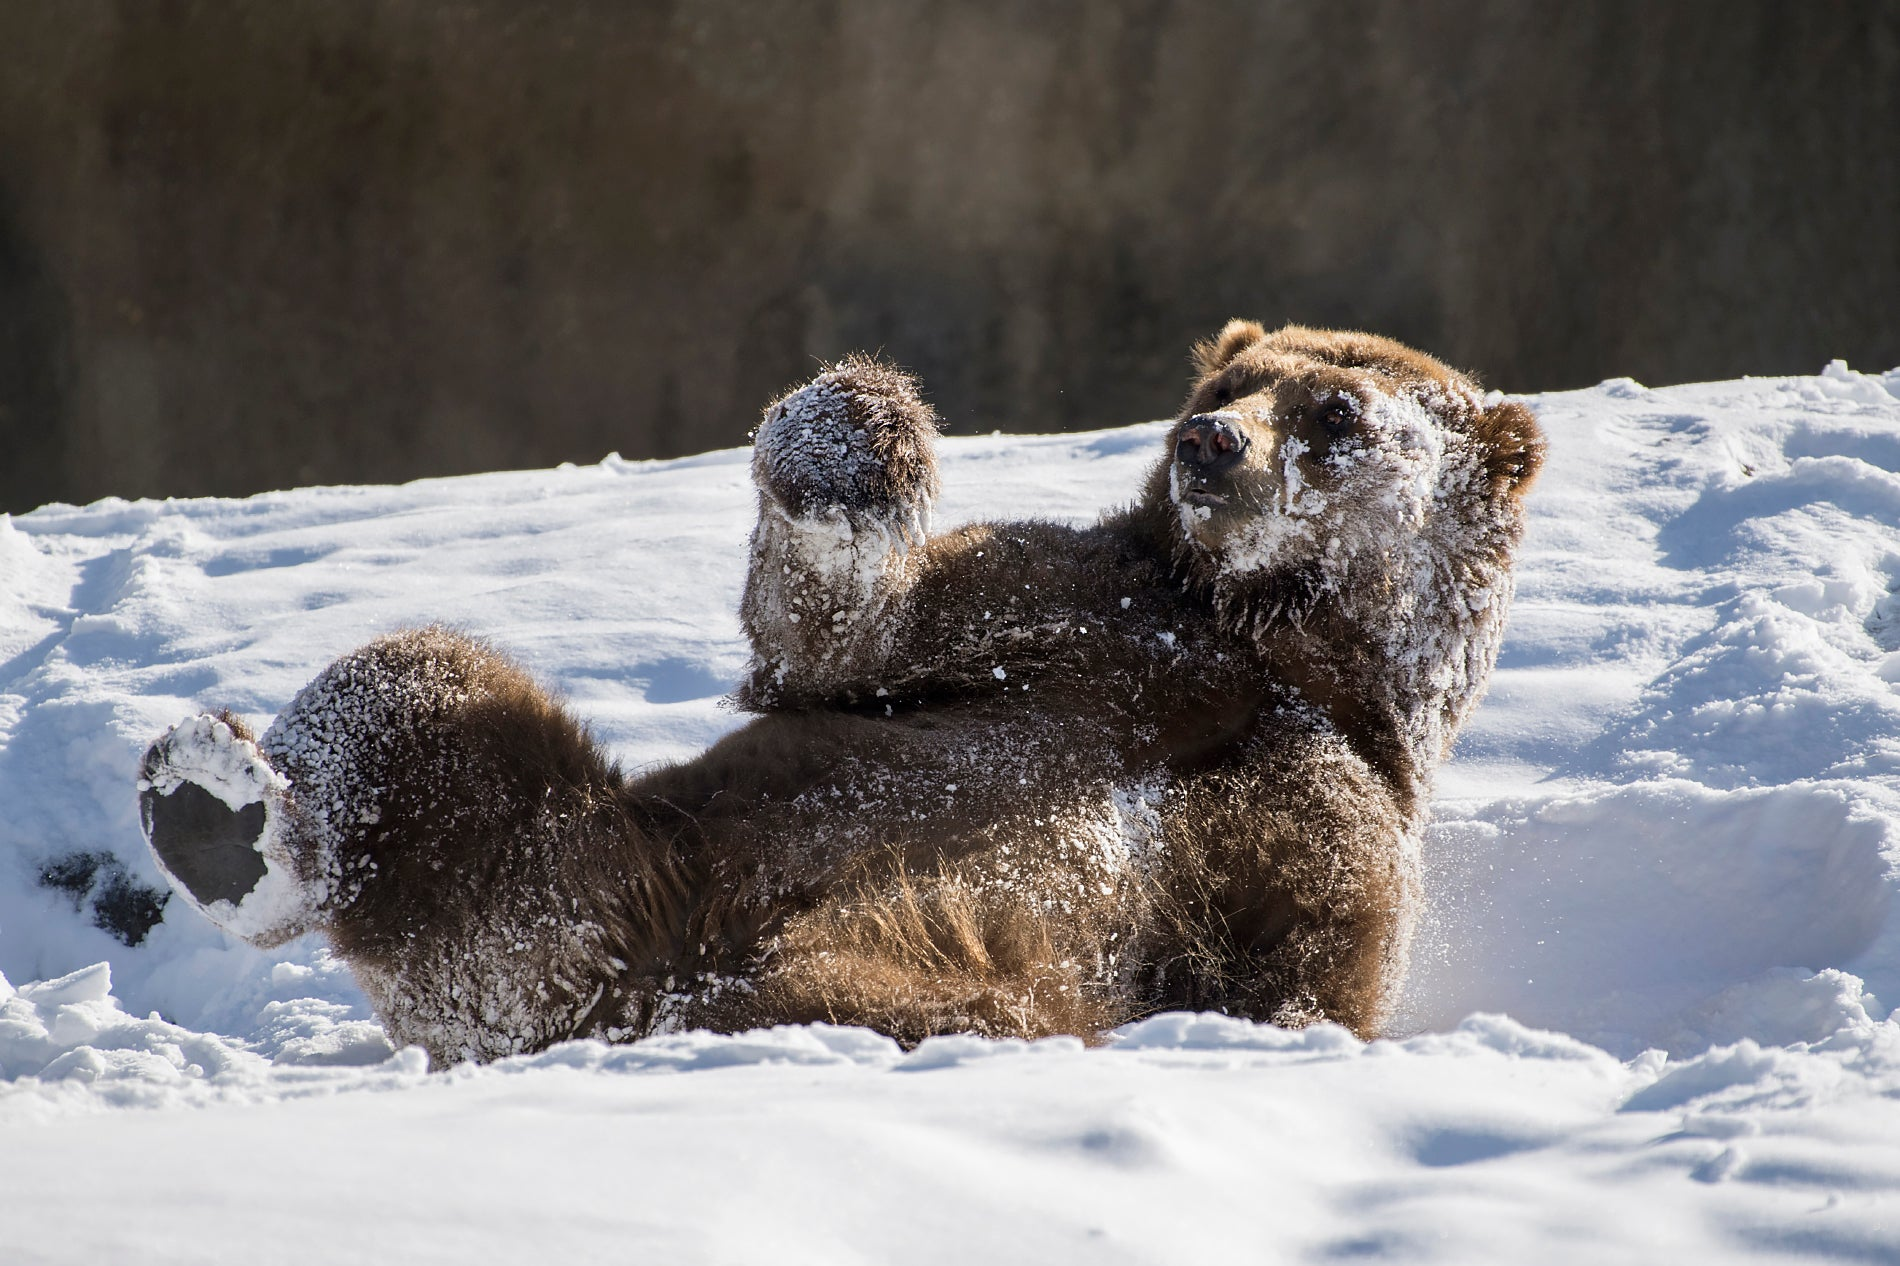 Delightful pictures of zoo animals playing in the snow